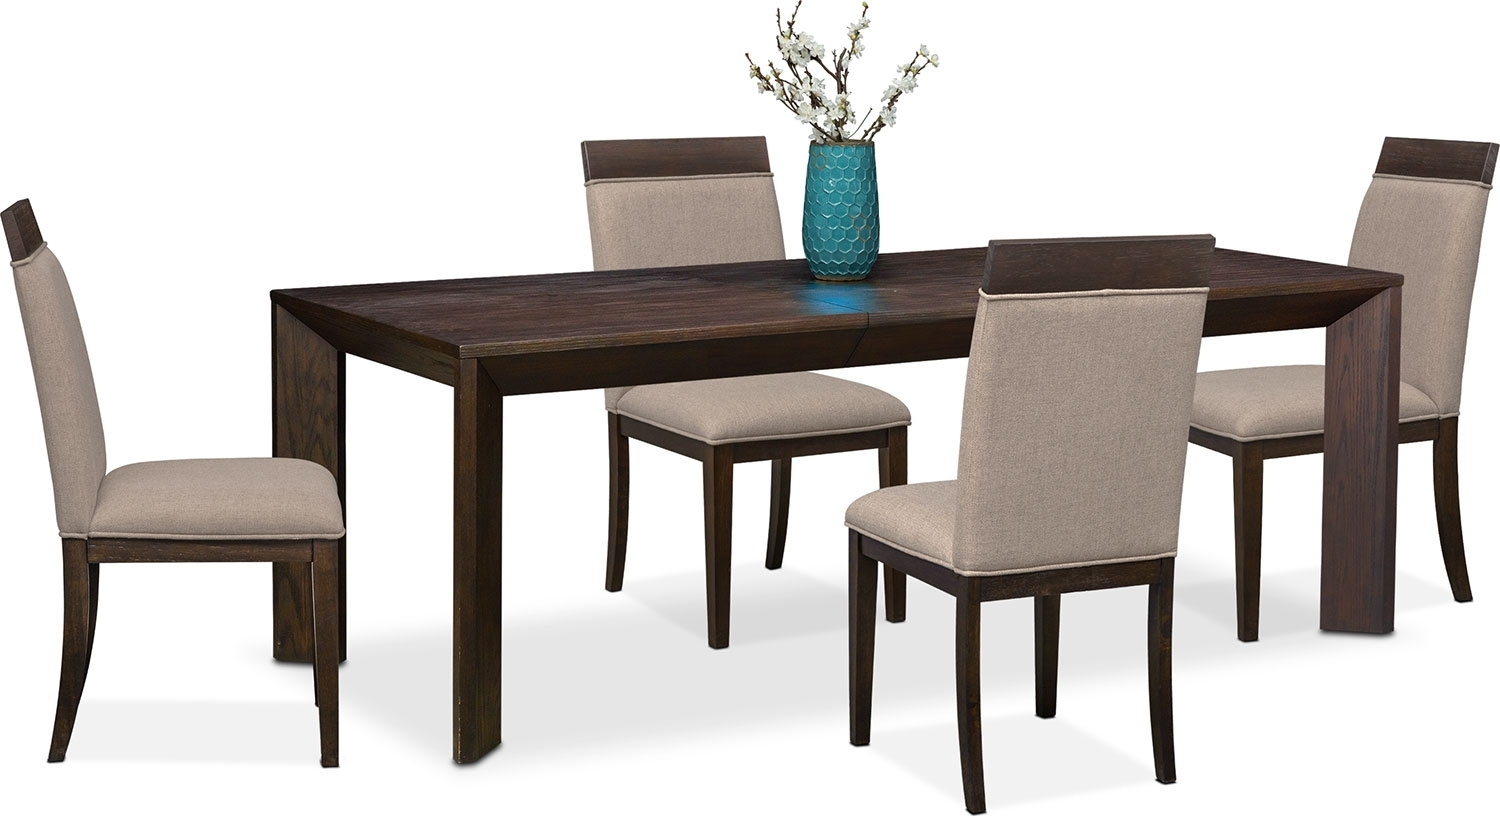 Gavin Table And 4 Side Chairs – Brownstone | Value City Furniture Throughout Current Gavin 7 Piece Dining Sets With Clint Side Chairs (Image 10 of 20)